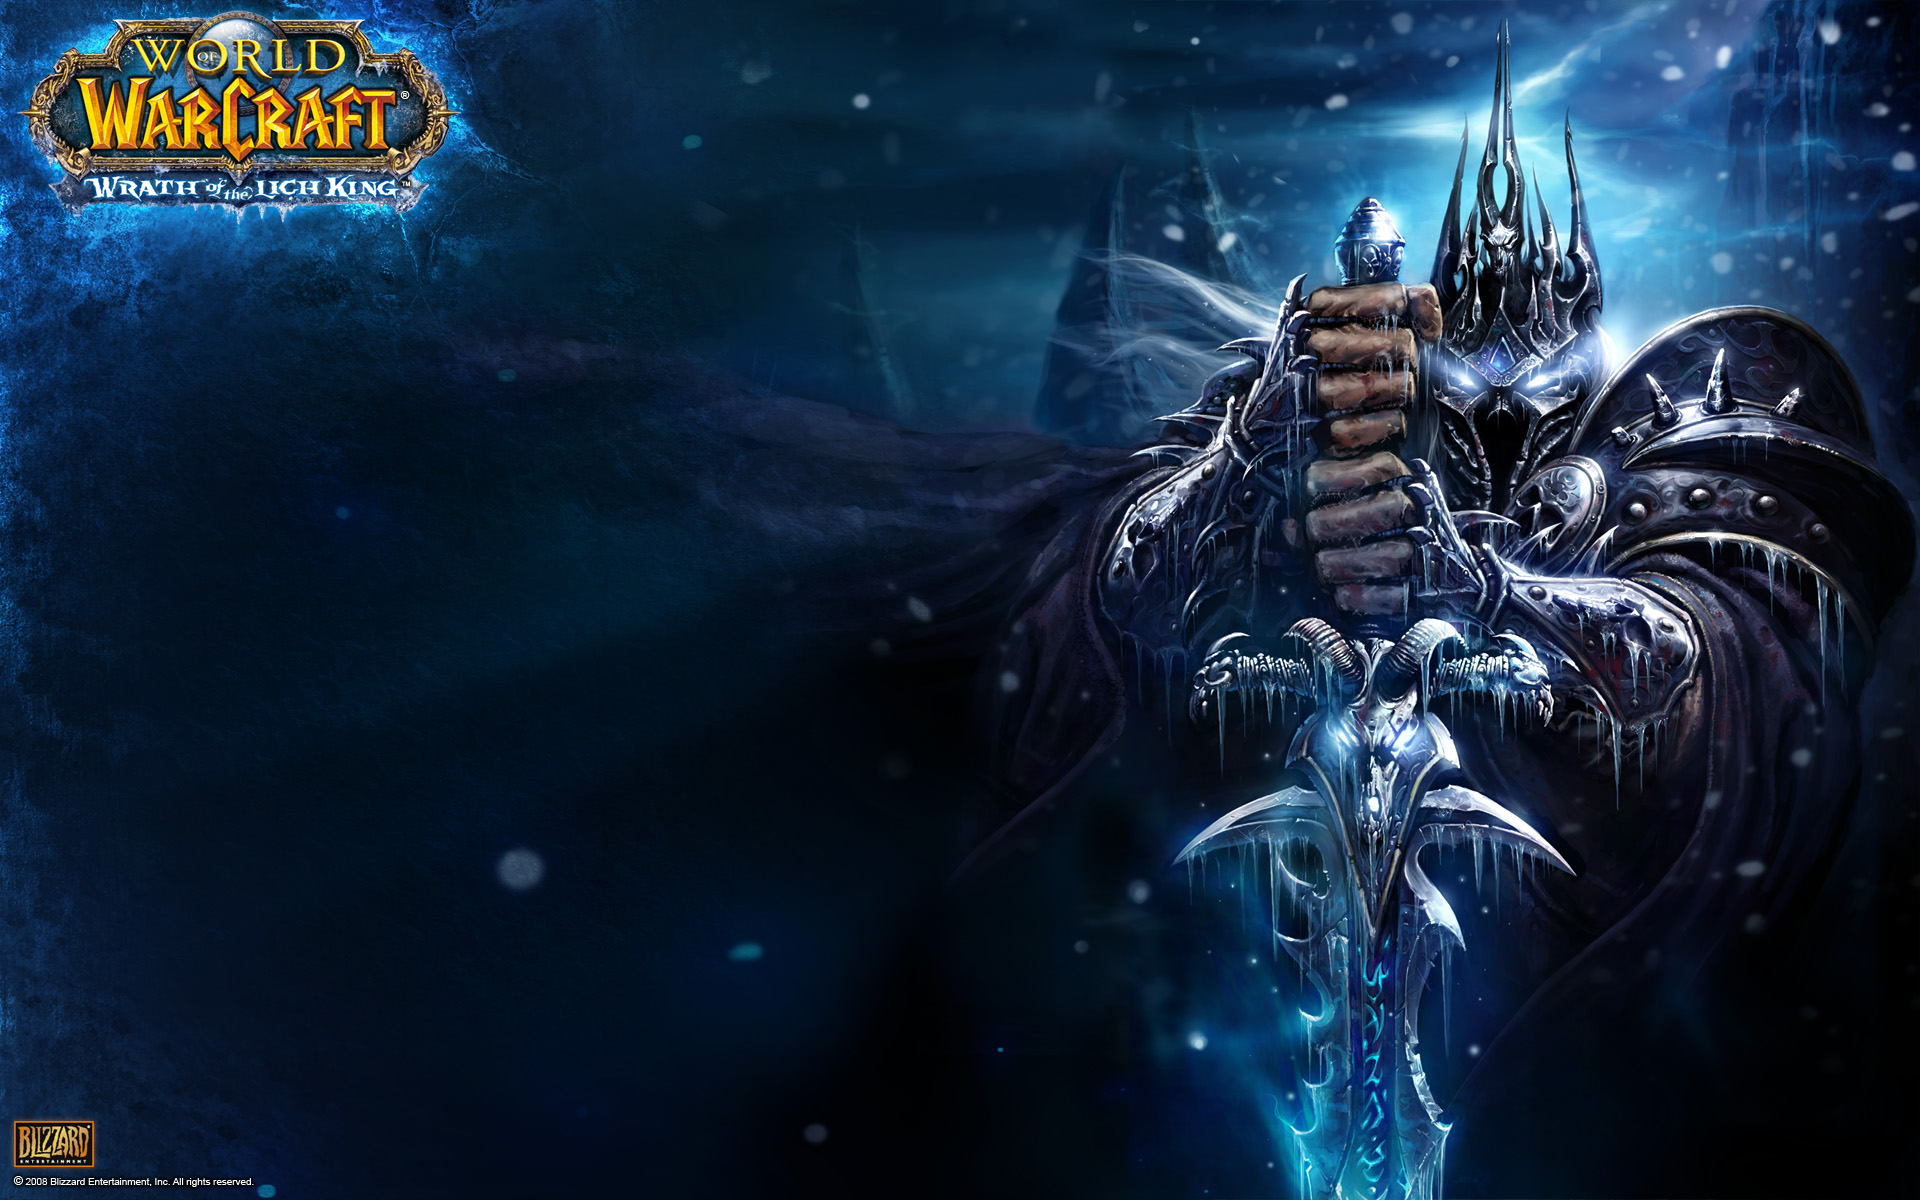 world of warcraft images background war scenic knight wallpaper 1920x1200